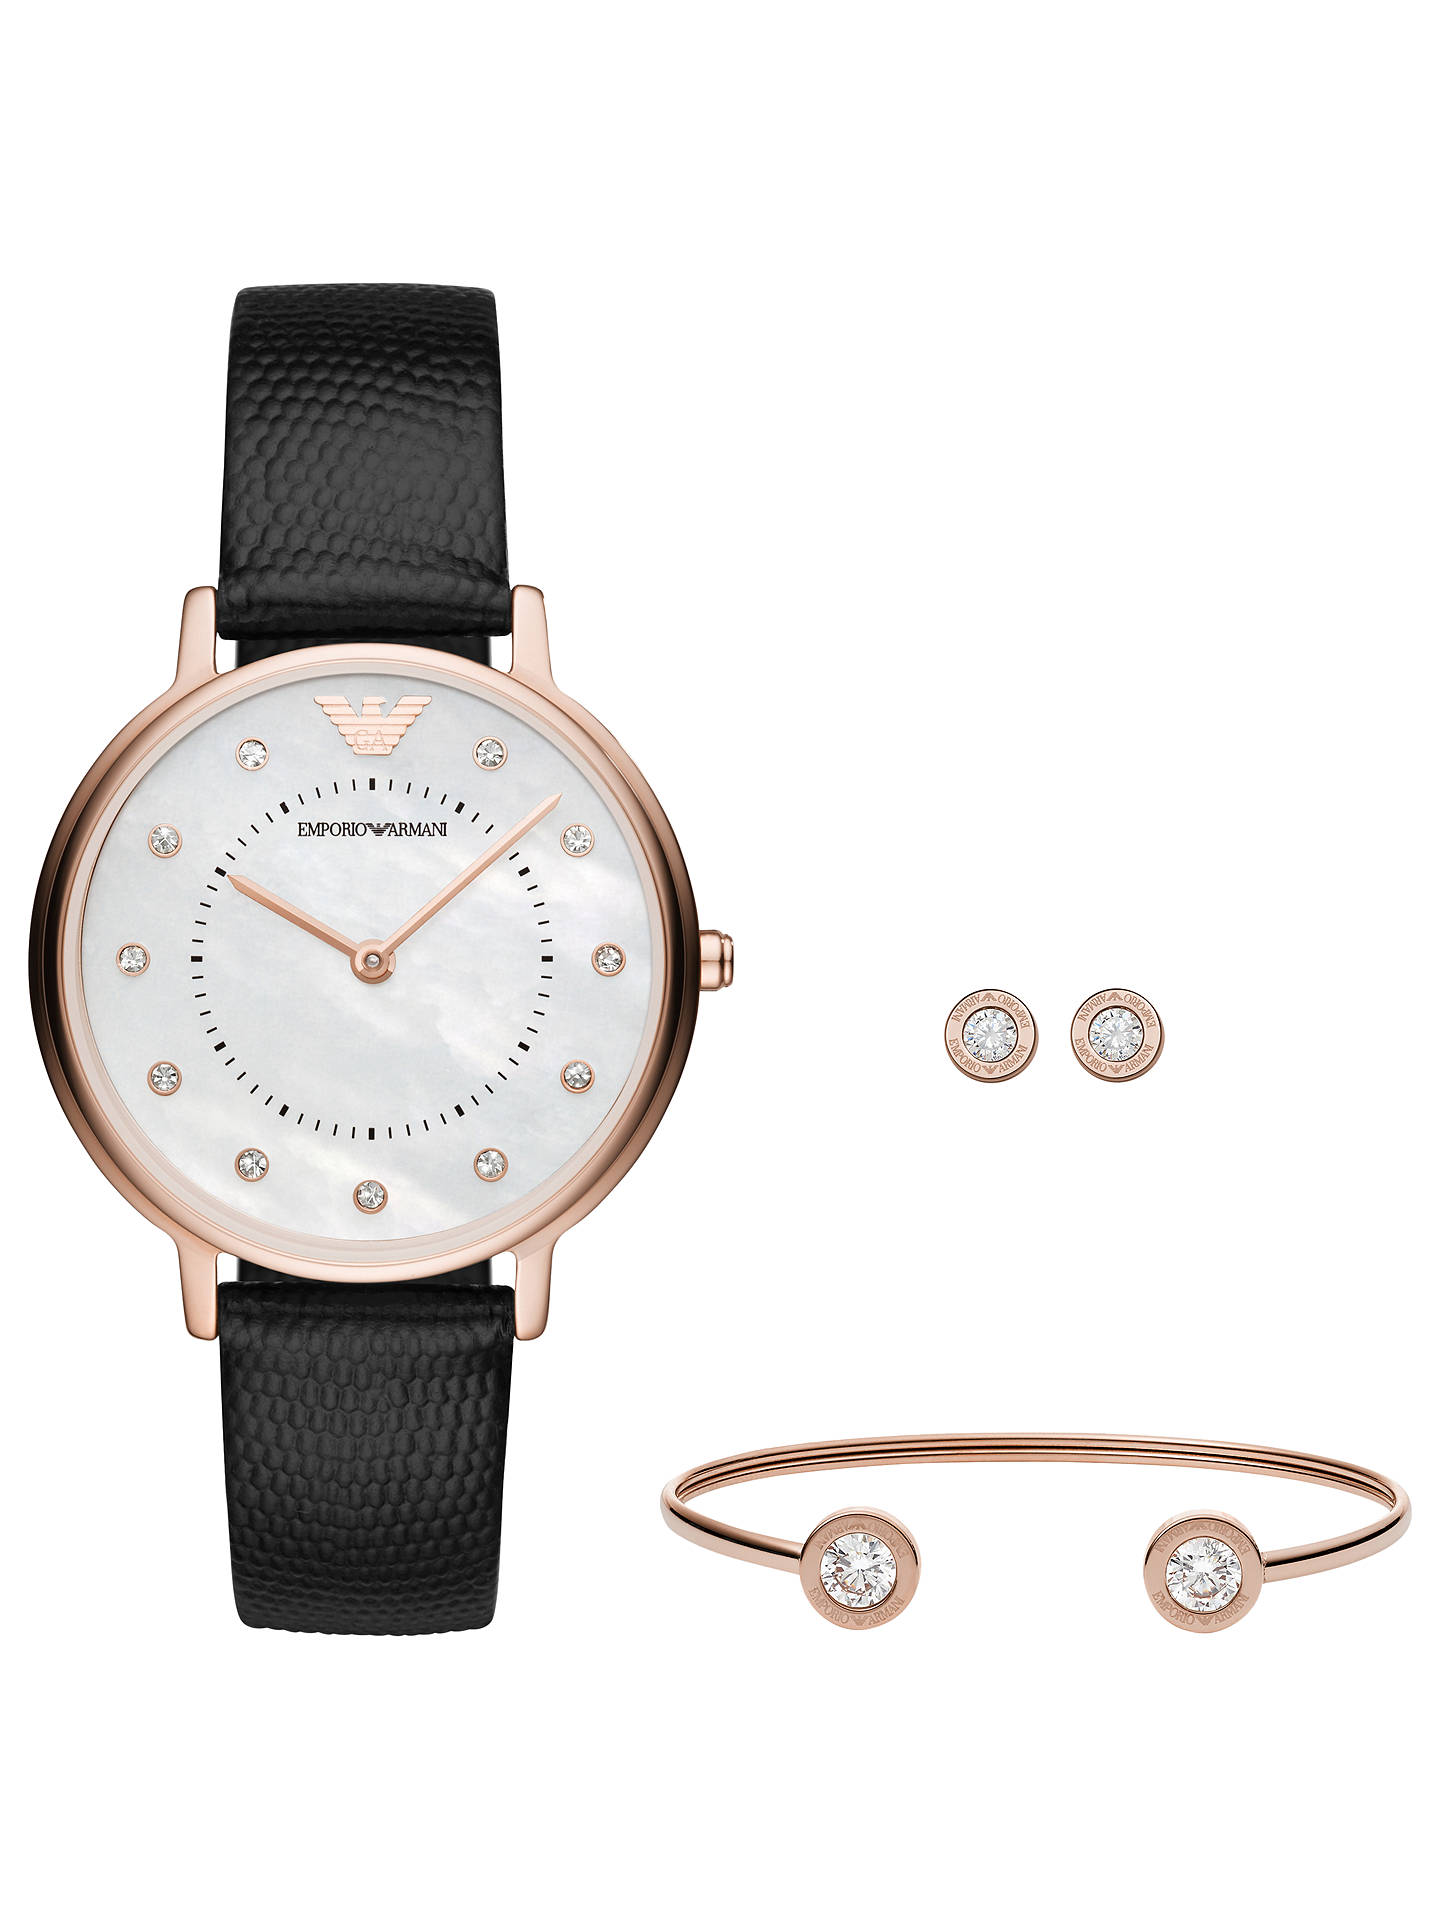 BuyEmporio Armani AR80011 Women s Crystal Leather Strap Watch Stud Earrings  and Bangle Gift Set 92dff879ade0e